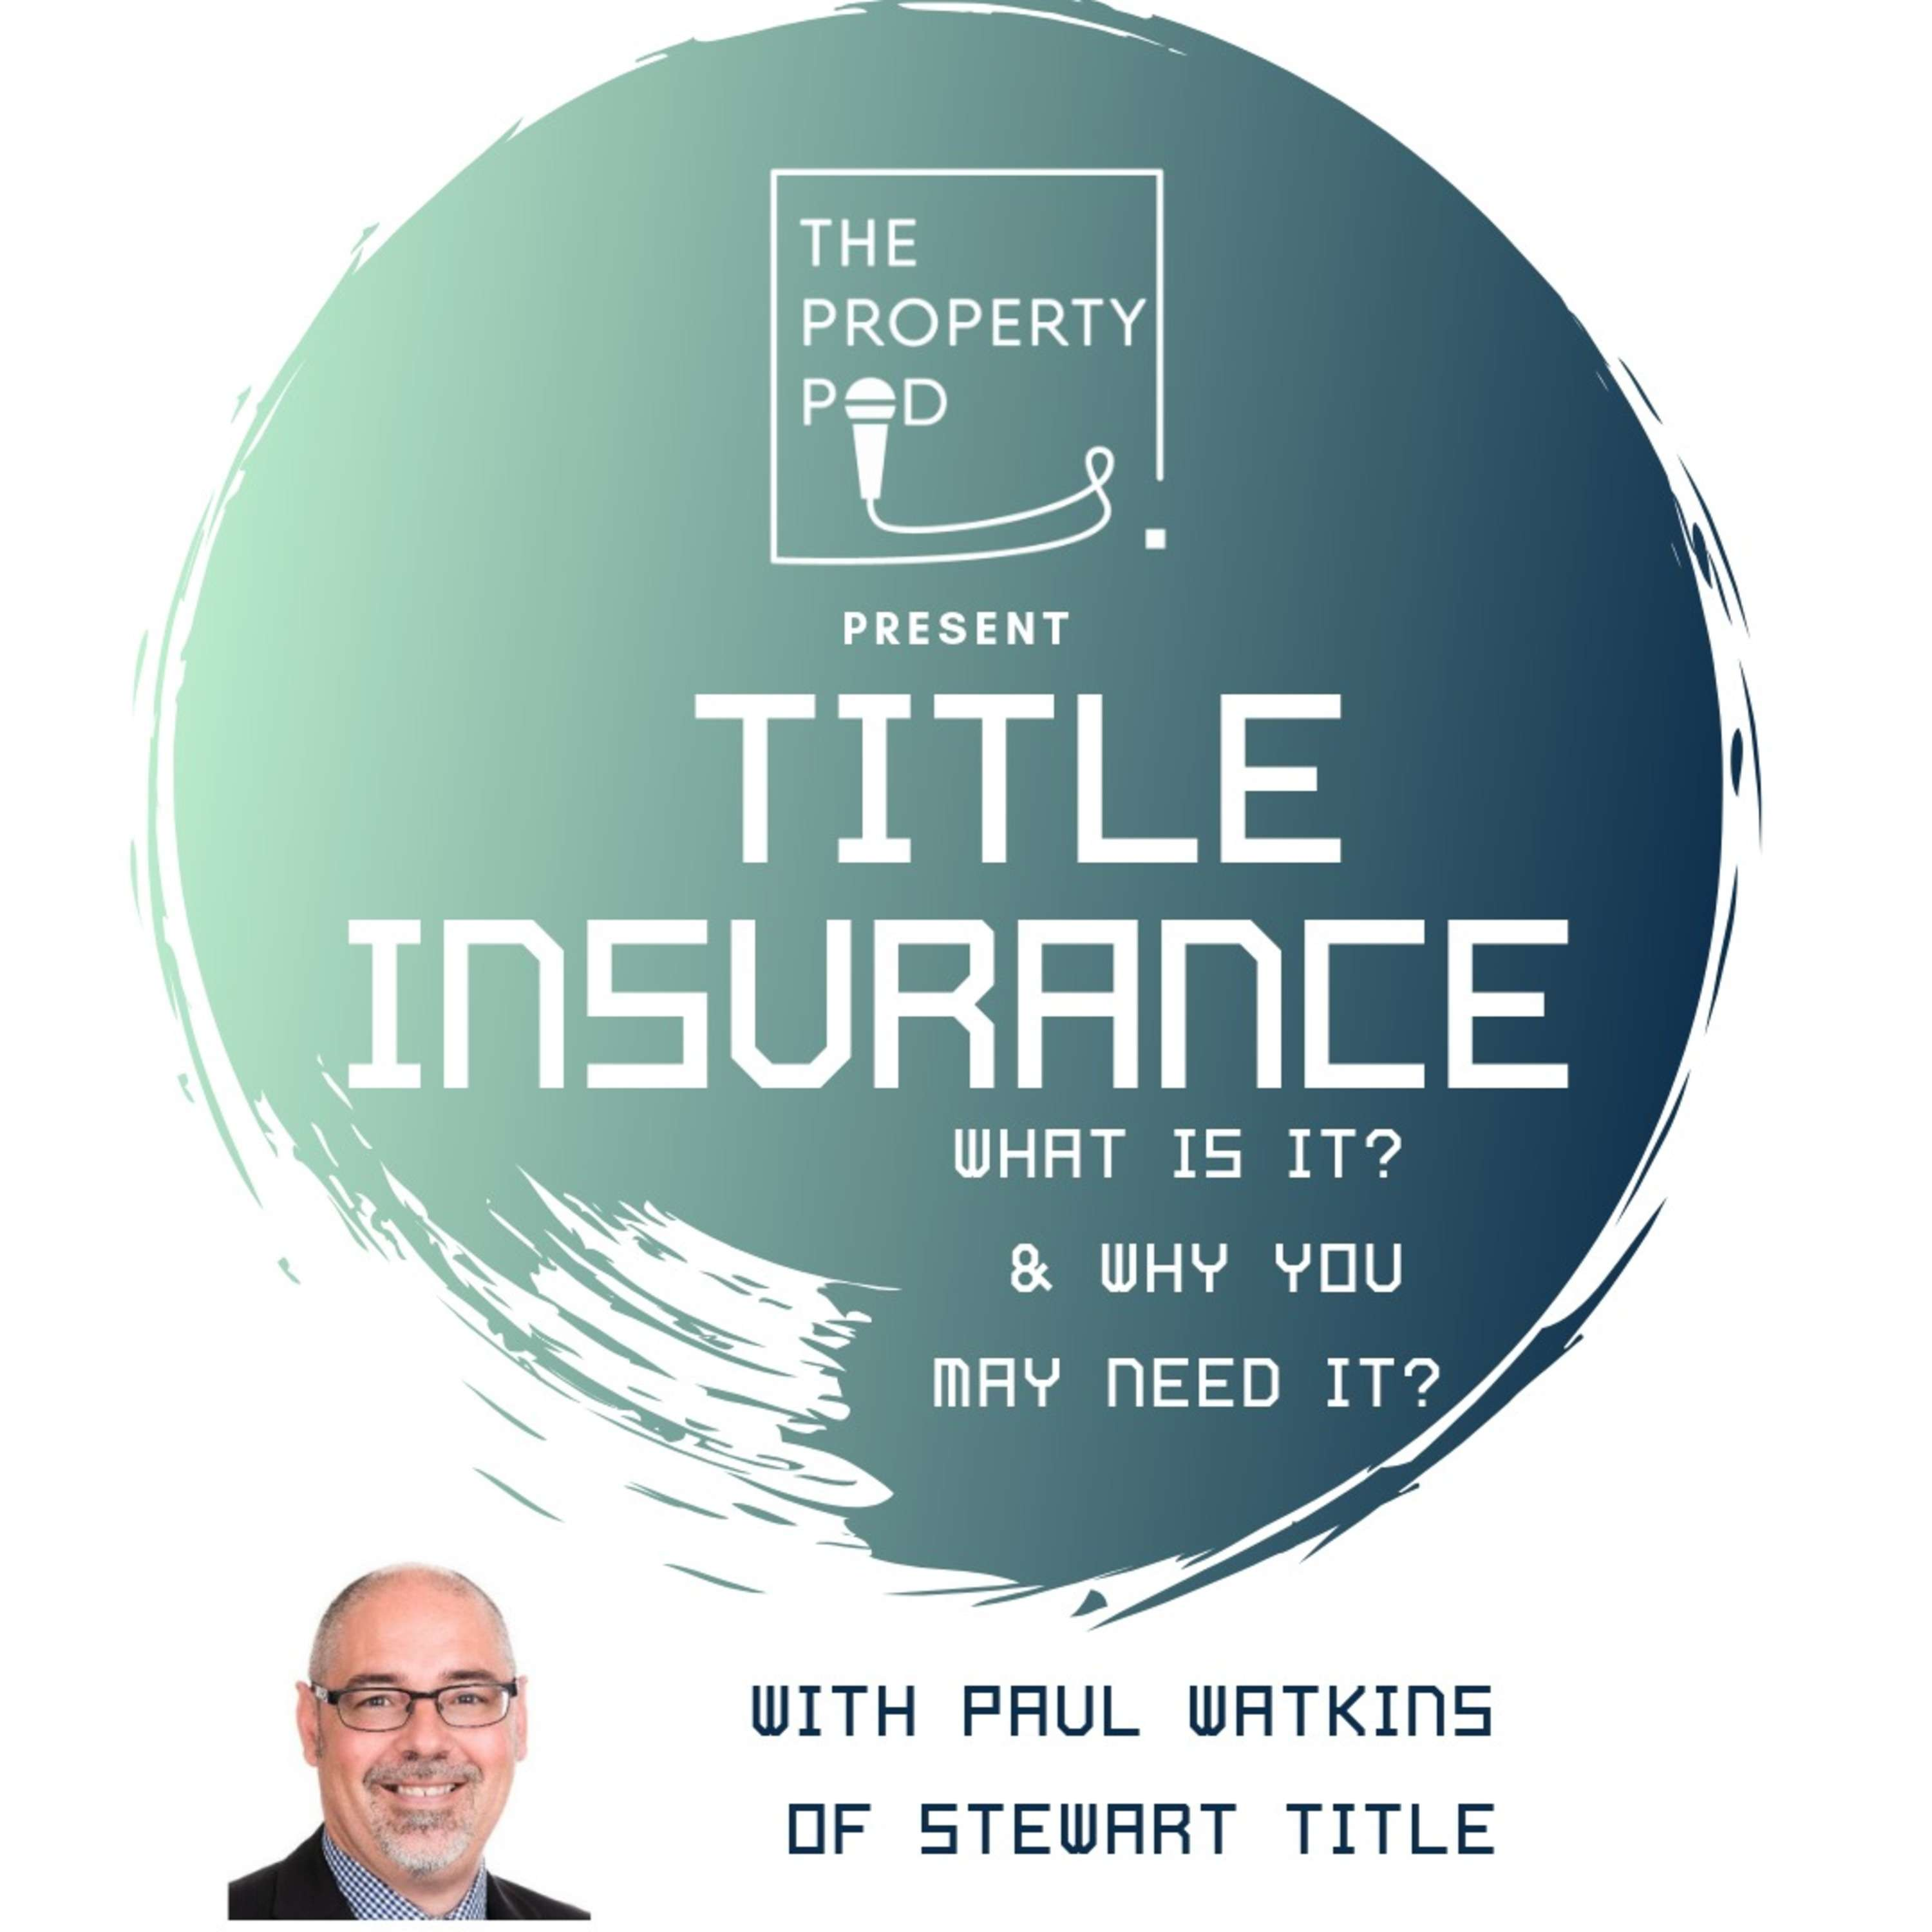 Title Insurance... What is it? and Why you may need it? with PAUL WATKINS